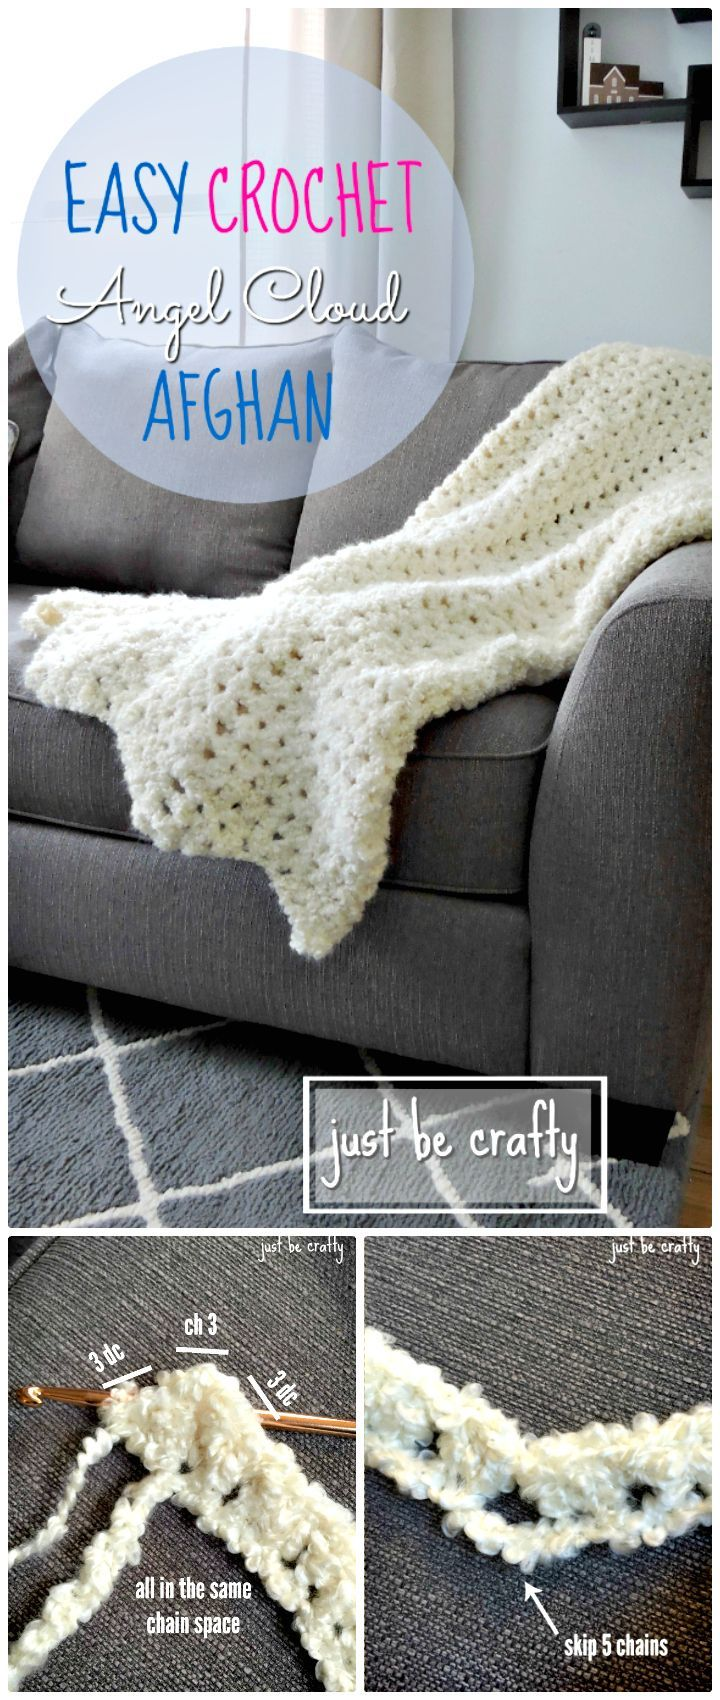 100 Free Crochet Blanket Patterns to Try Out This Weekend   Pinterest